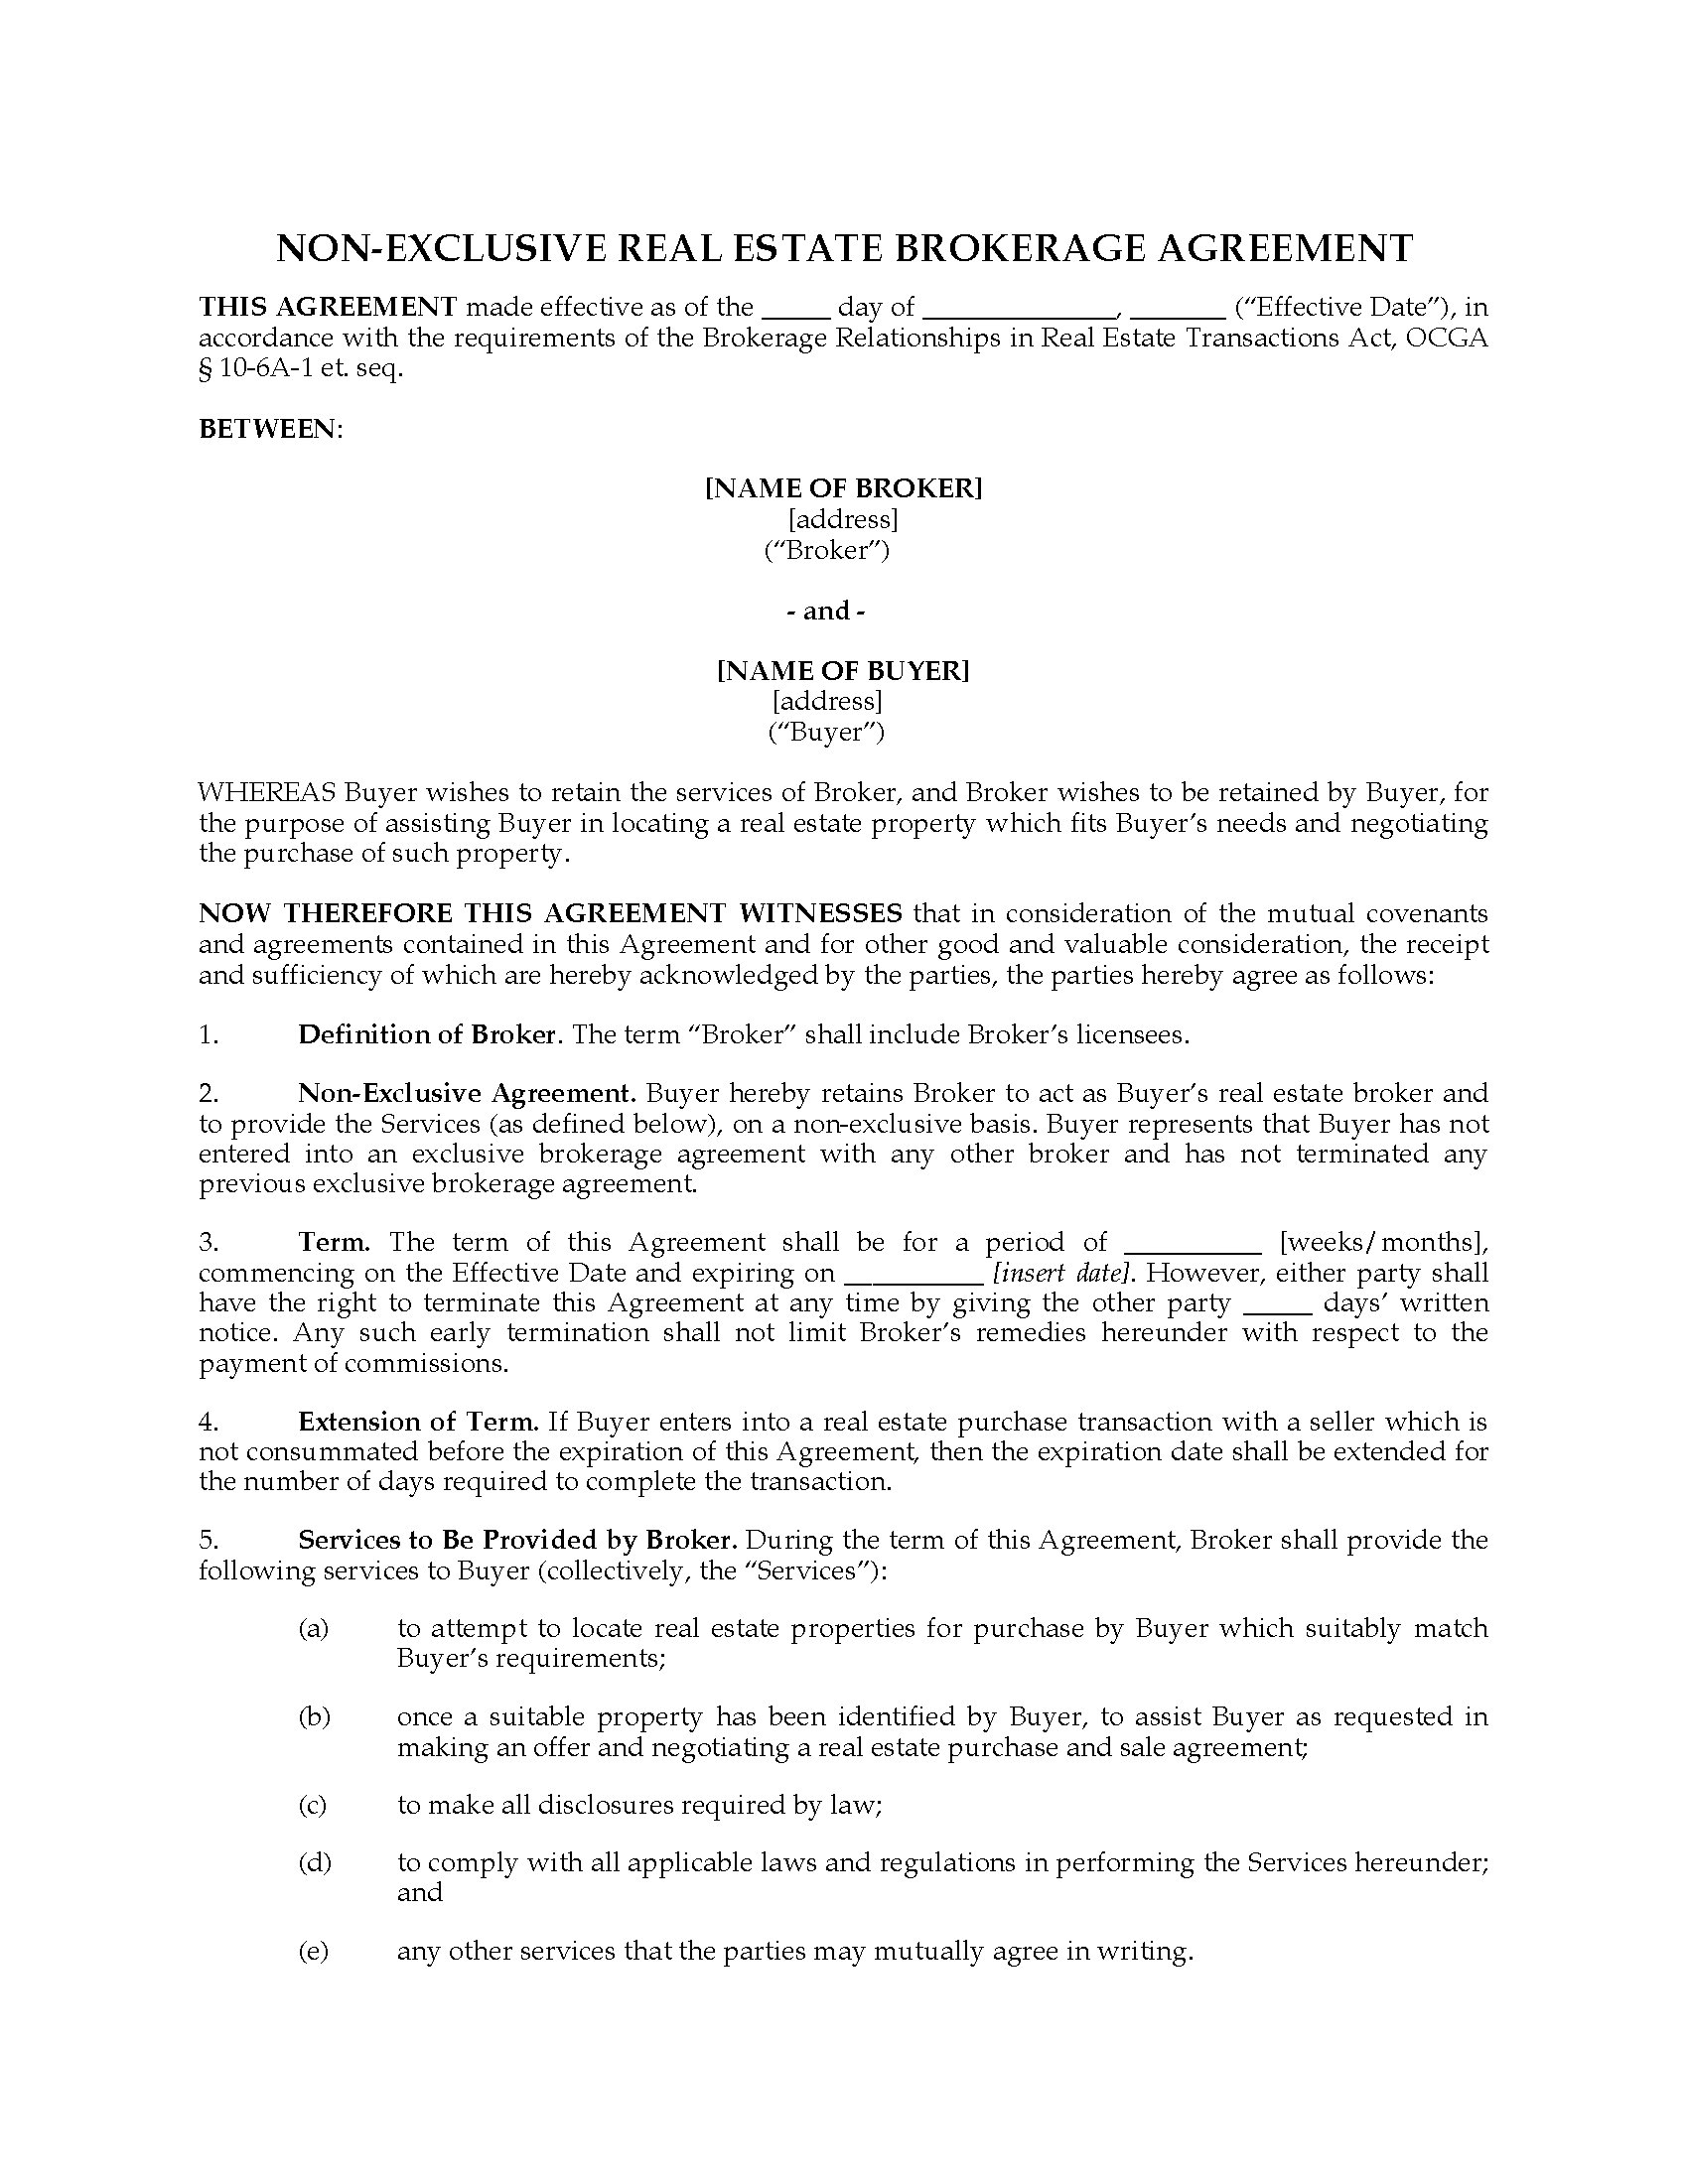 Georgia Non Exclusive Broker Agreement For Real Estate Purchase